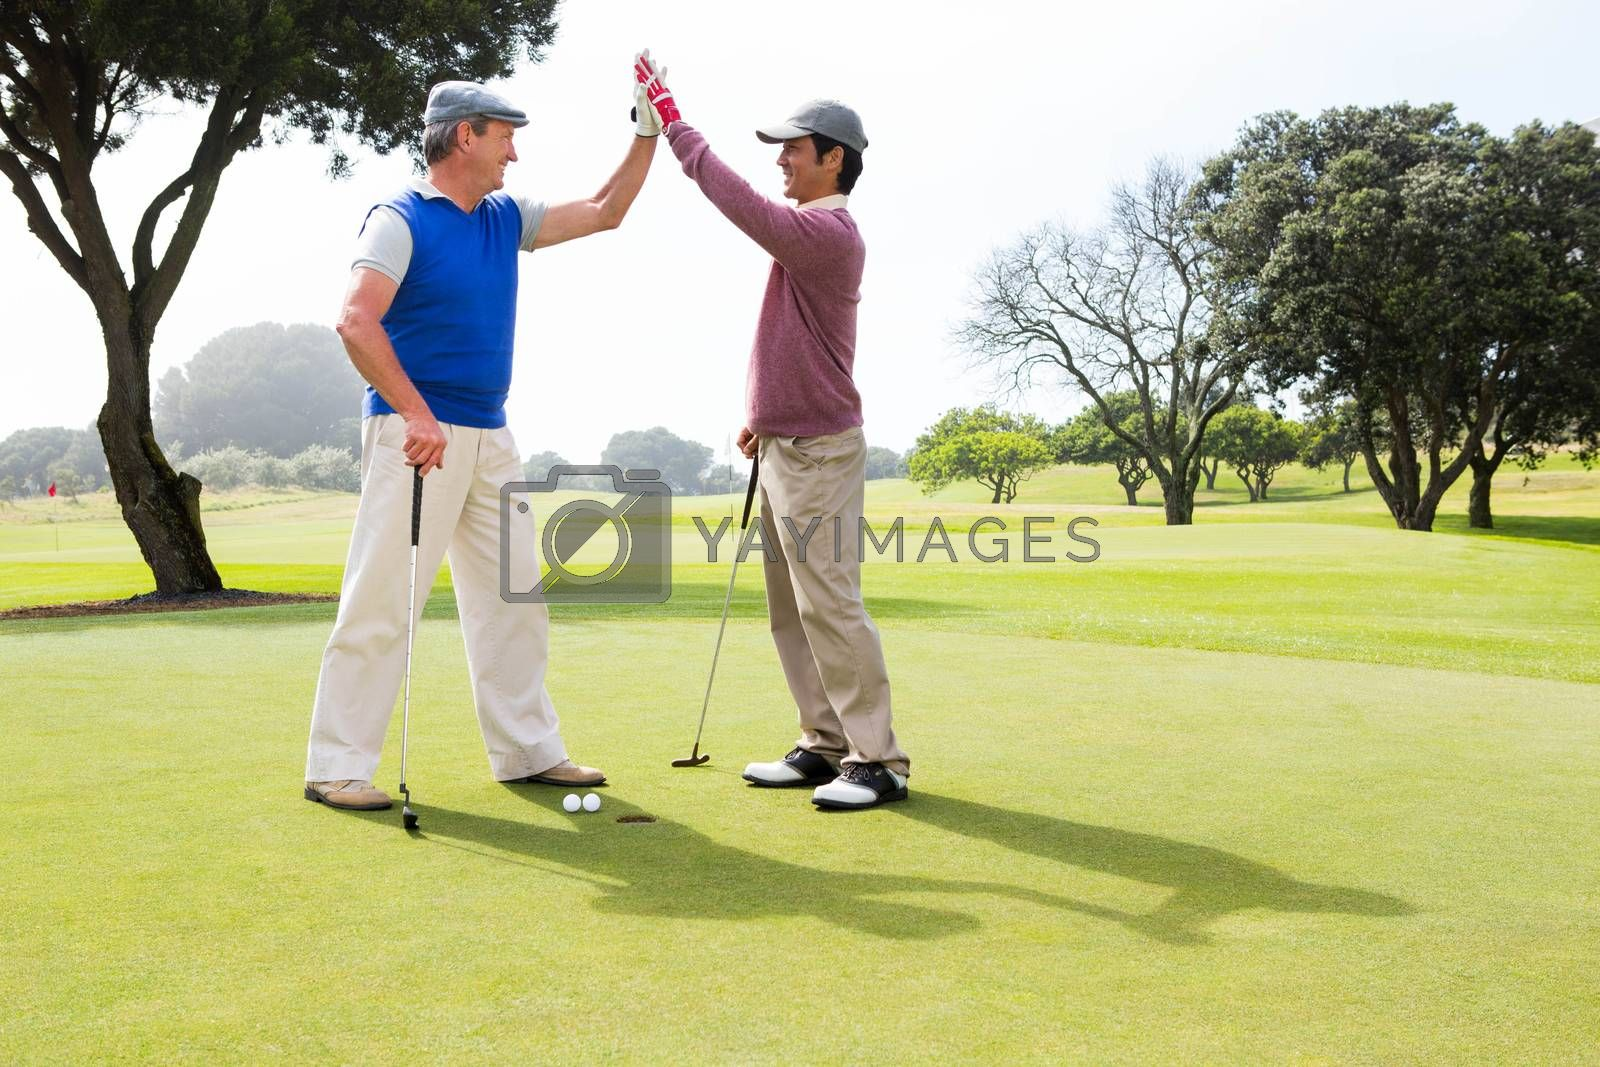 Golfing friends high fiving on the hole at the golf course